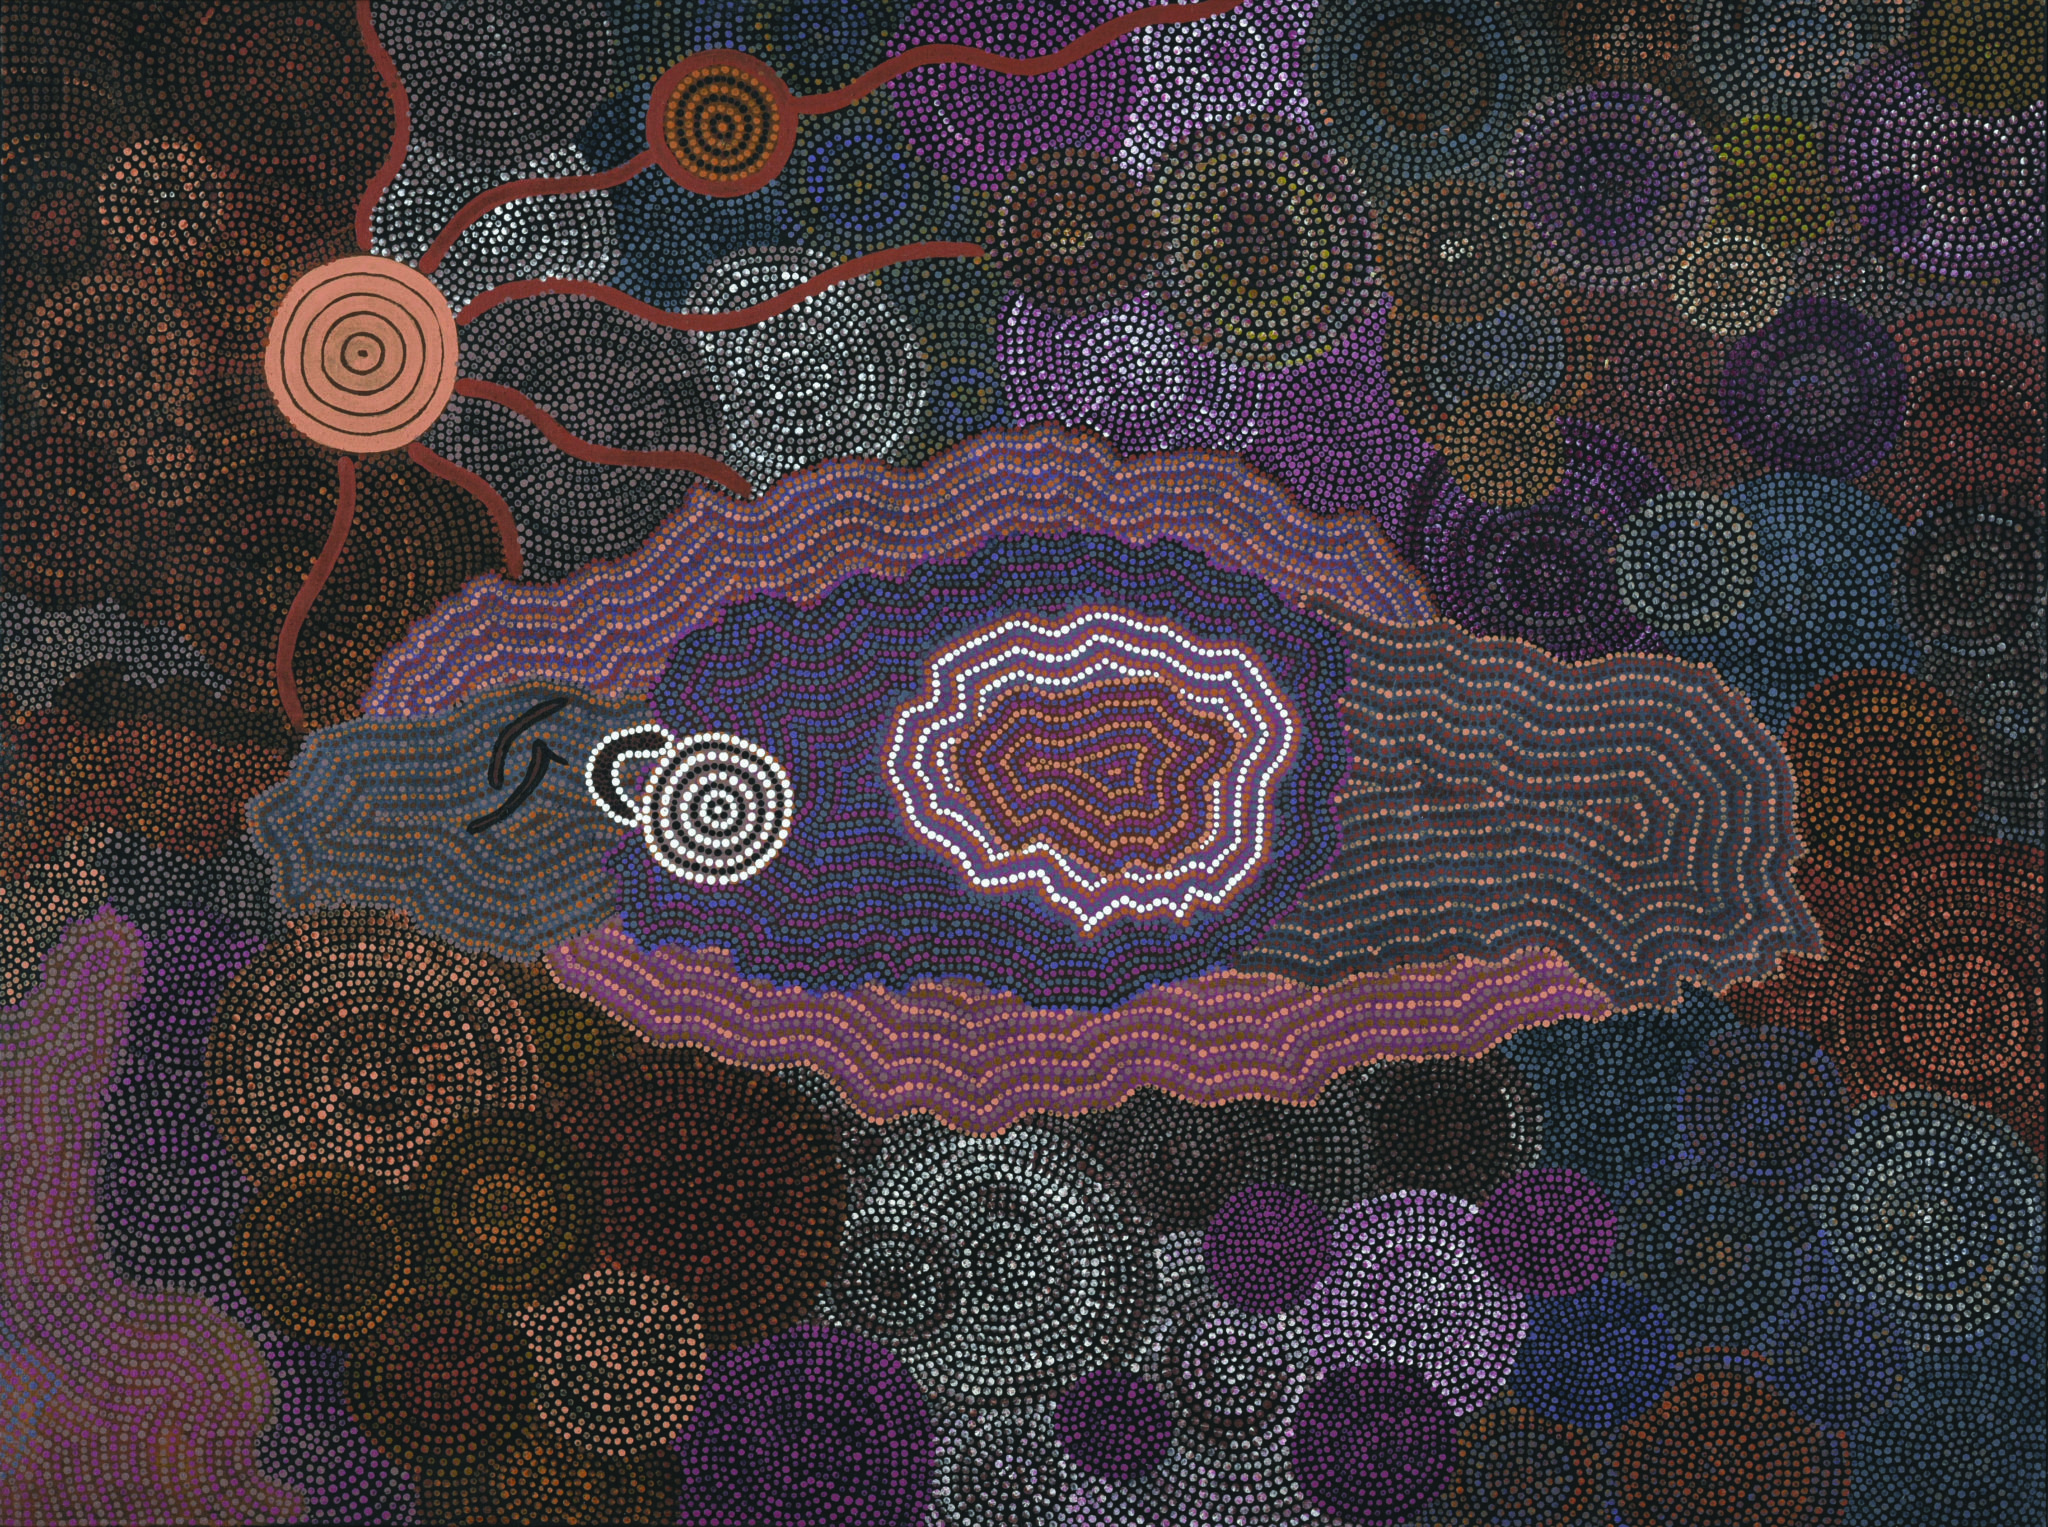 Pansy Napangati, Ilpilli, 1990, Acrylic on Canvas, 92 x 122 cm, CBus Collection of Australian Art